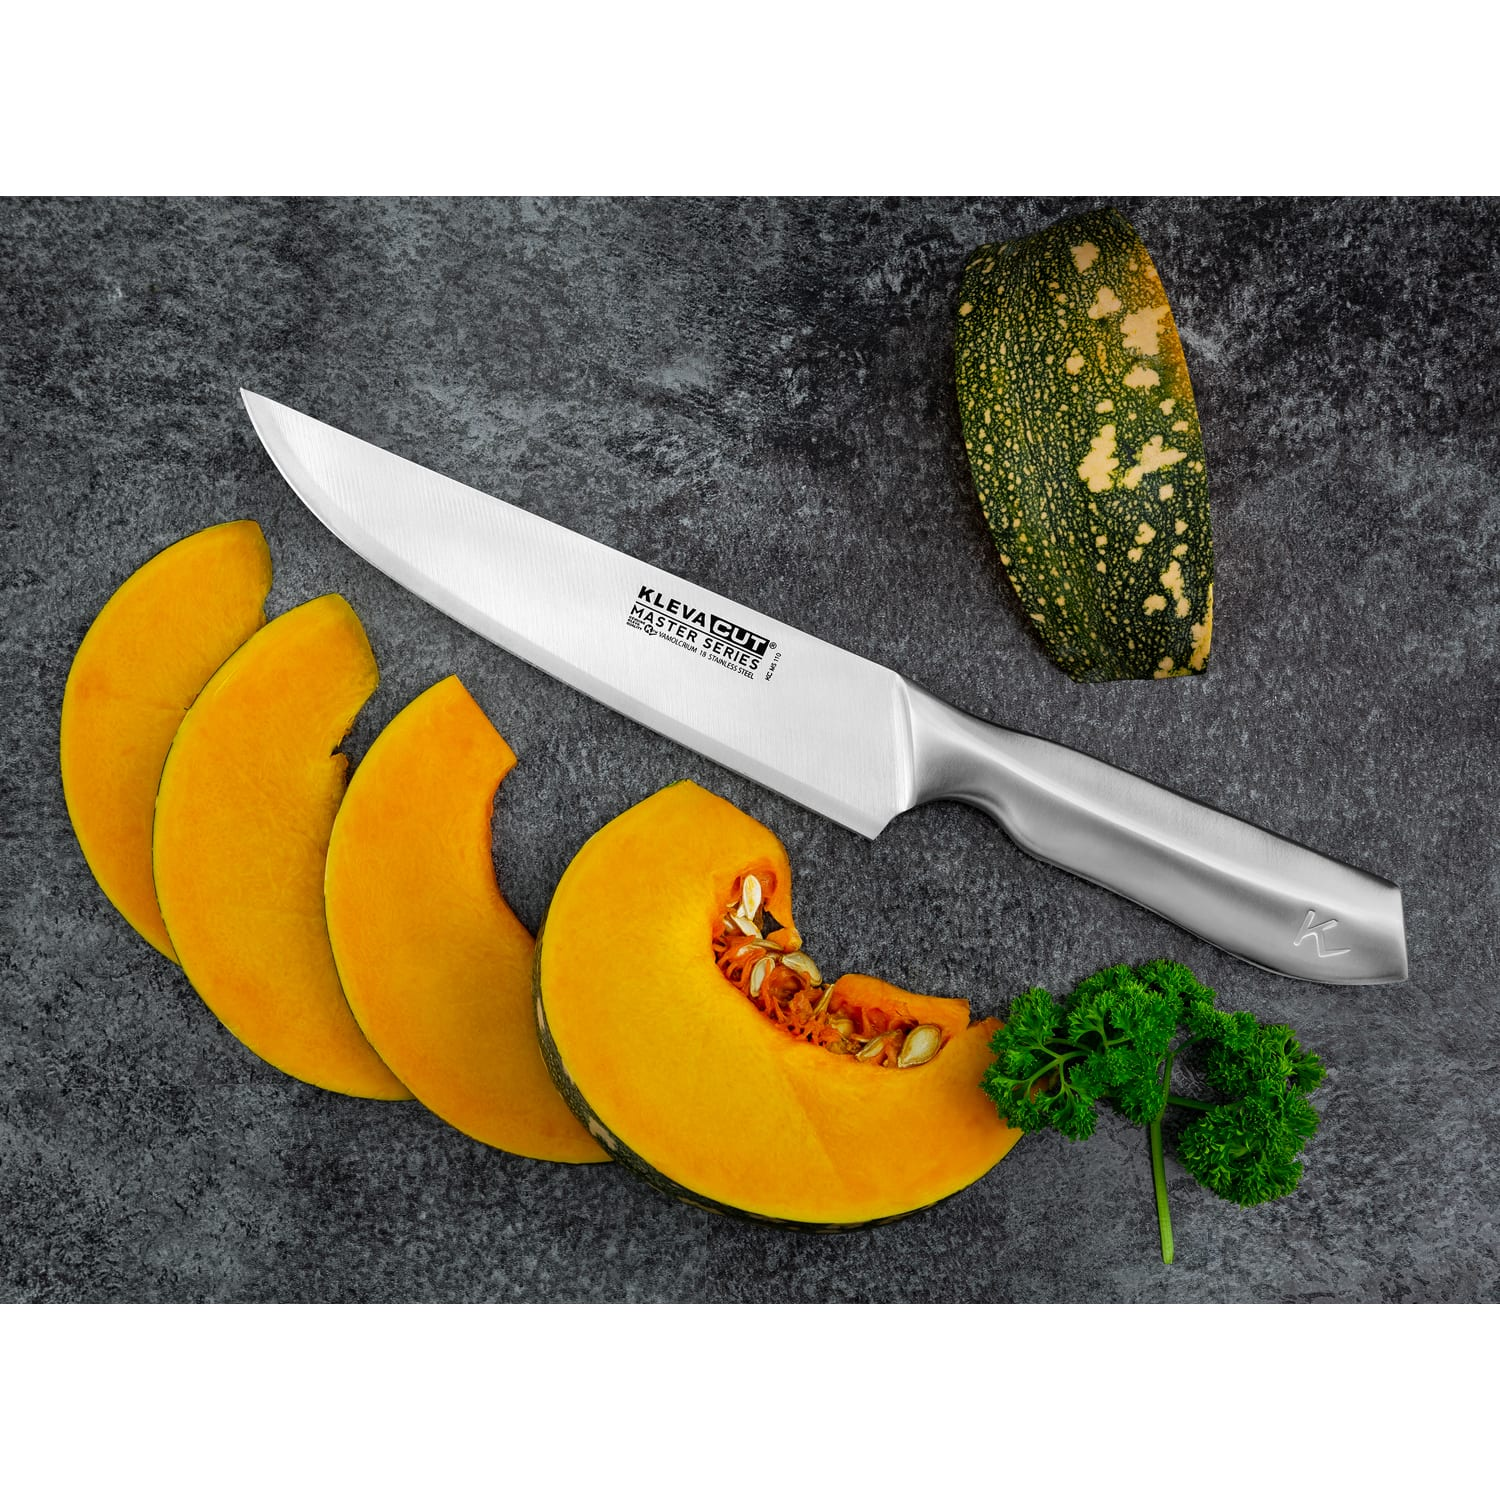 KlevaCut® Master Series New 3pc Knife Set - Chef, Utility + Paring Knives